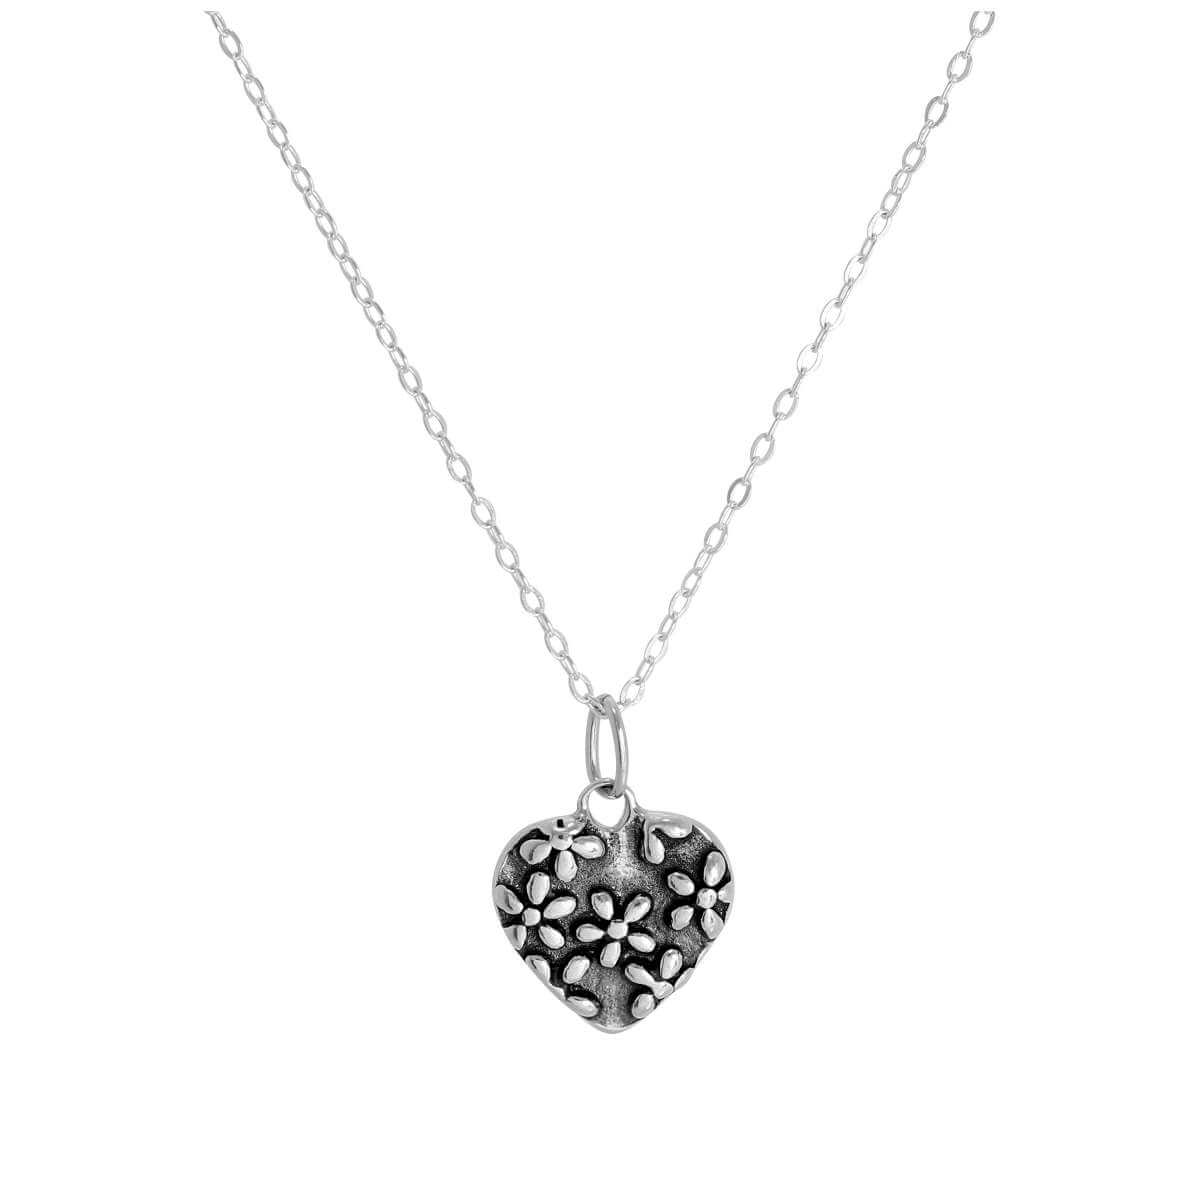 Sterling Silver Floral Heart Pendant Necklace 14 - 28 Inches